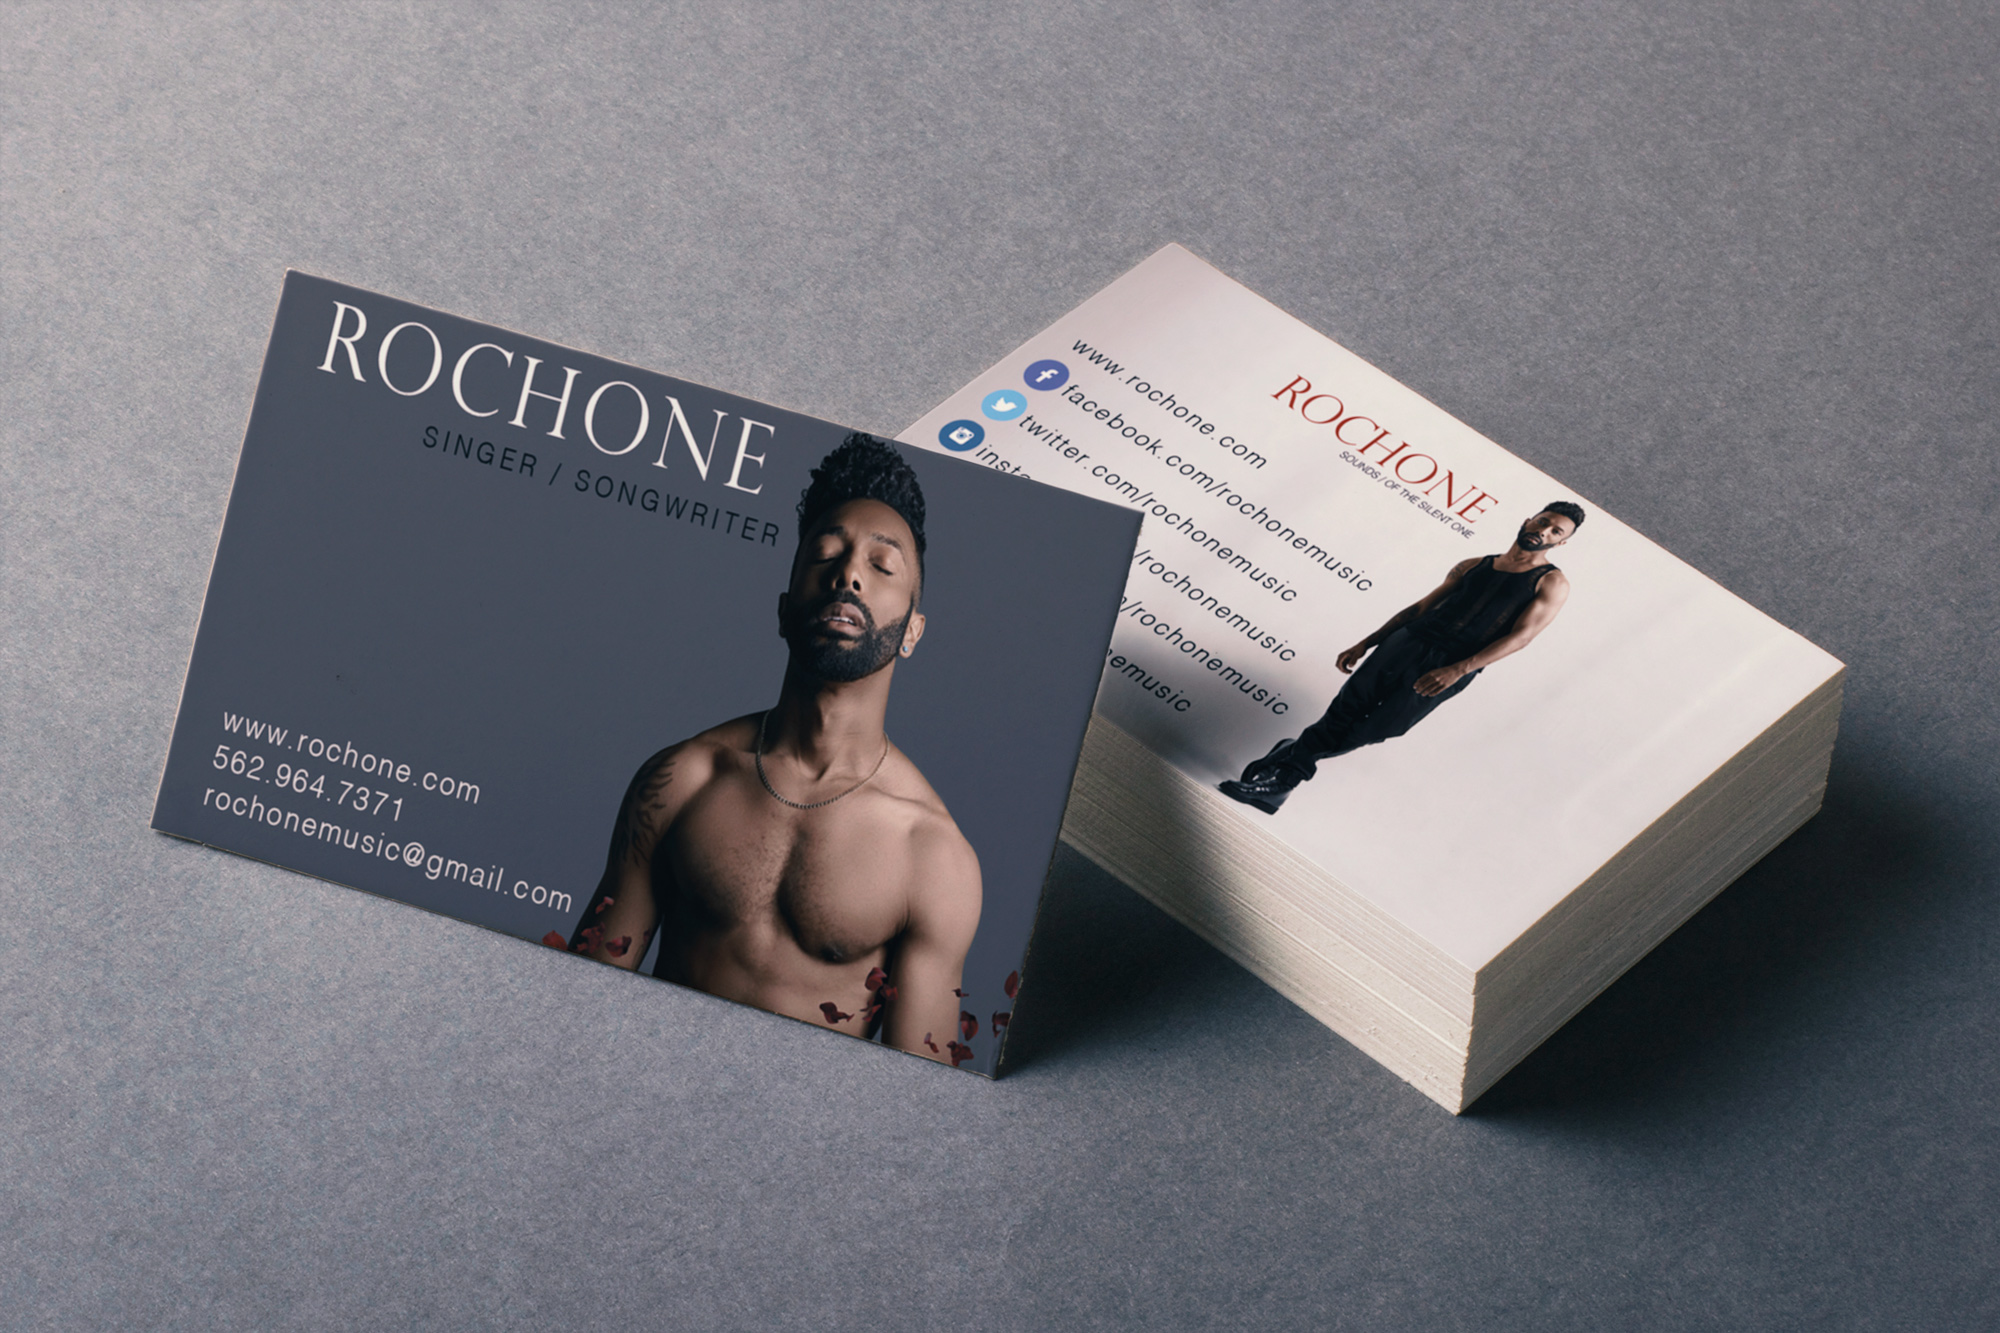 Business Cards for Singer/Songwriter Rochone